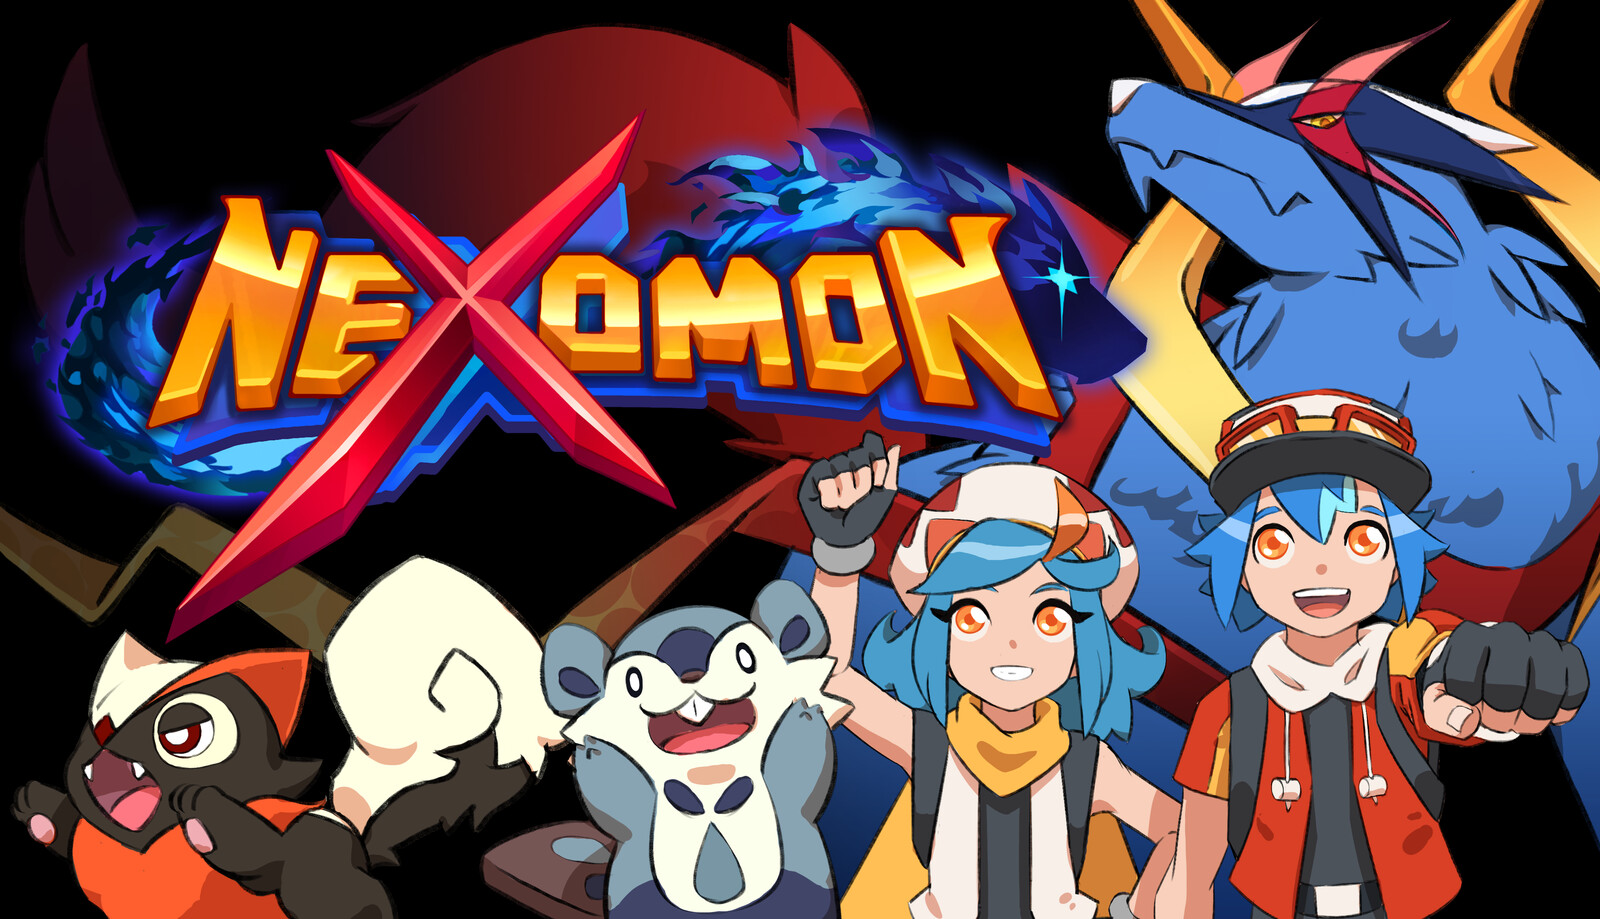 Nexomon Steam Promo